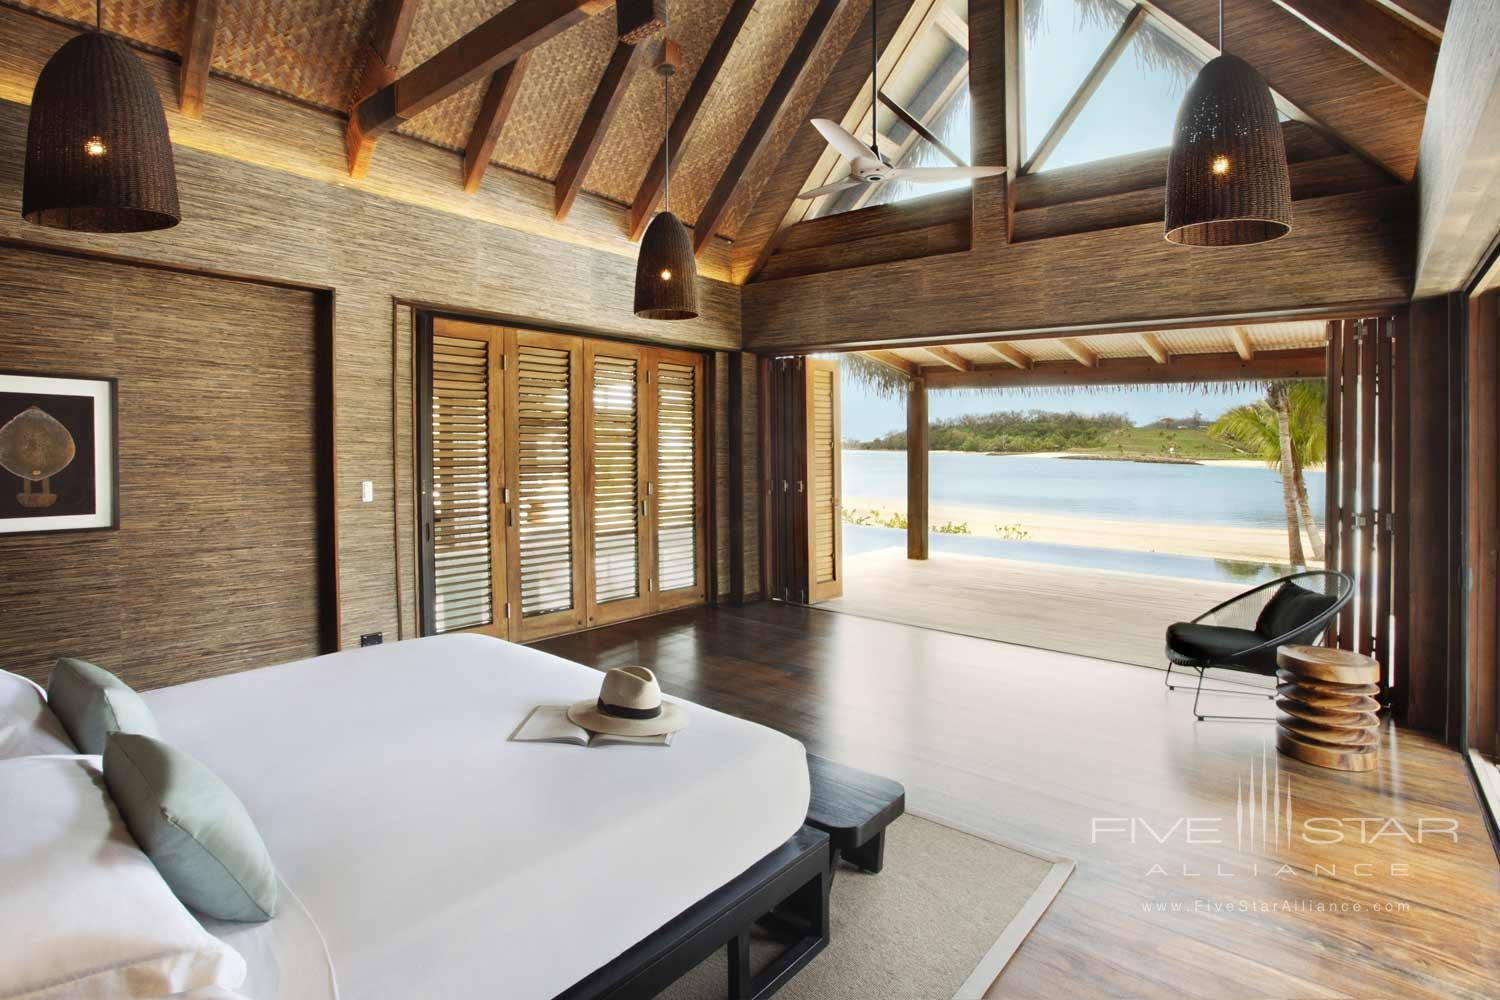 Beachfront Guest Room at Six Senses Fiji, MALOLO ISLAND, FIJI ISLANDS